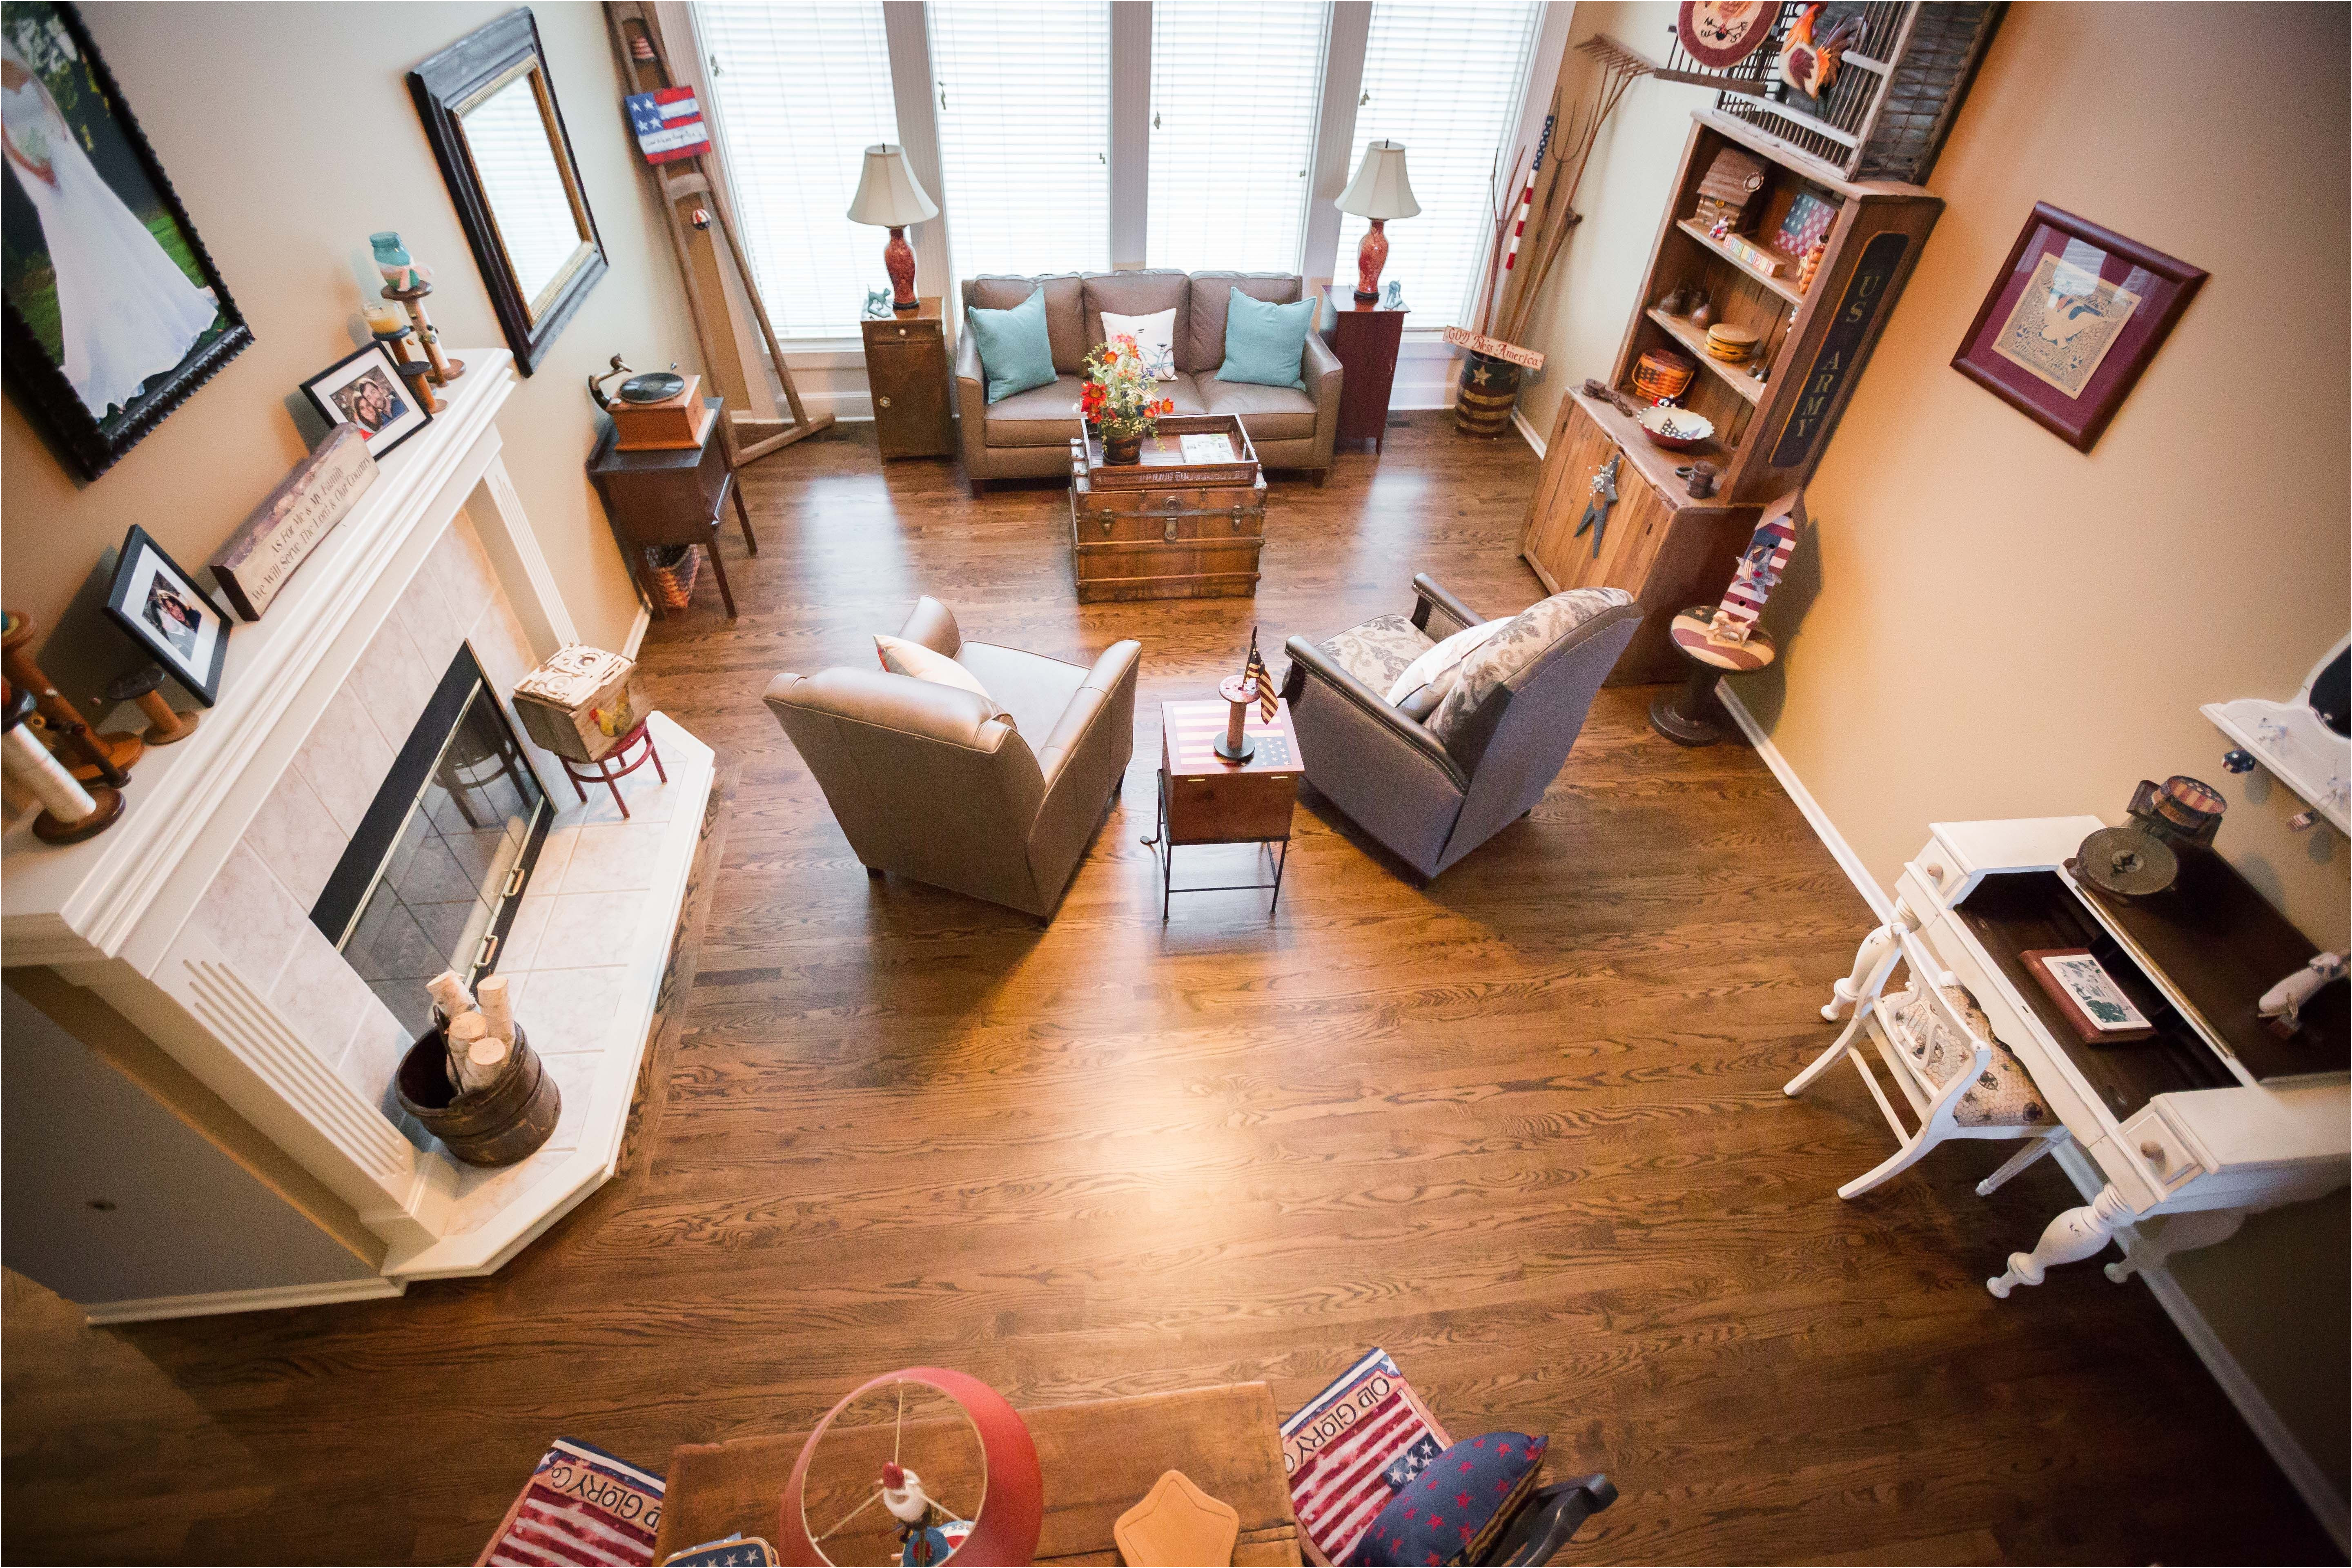 dark hardwood floor living room ideas of wood flooring ideas for living room elegant living room wall colors with regard to wood flooring ideas for living room best of pin by karolina tylka on decor pinterest of related post